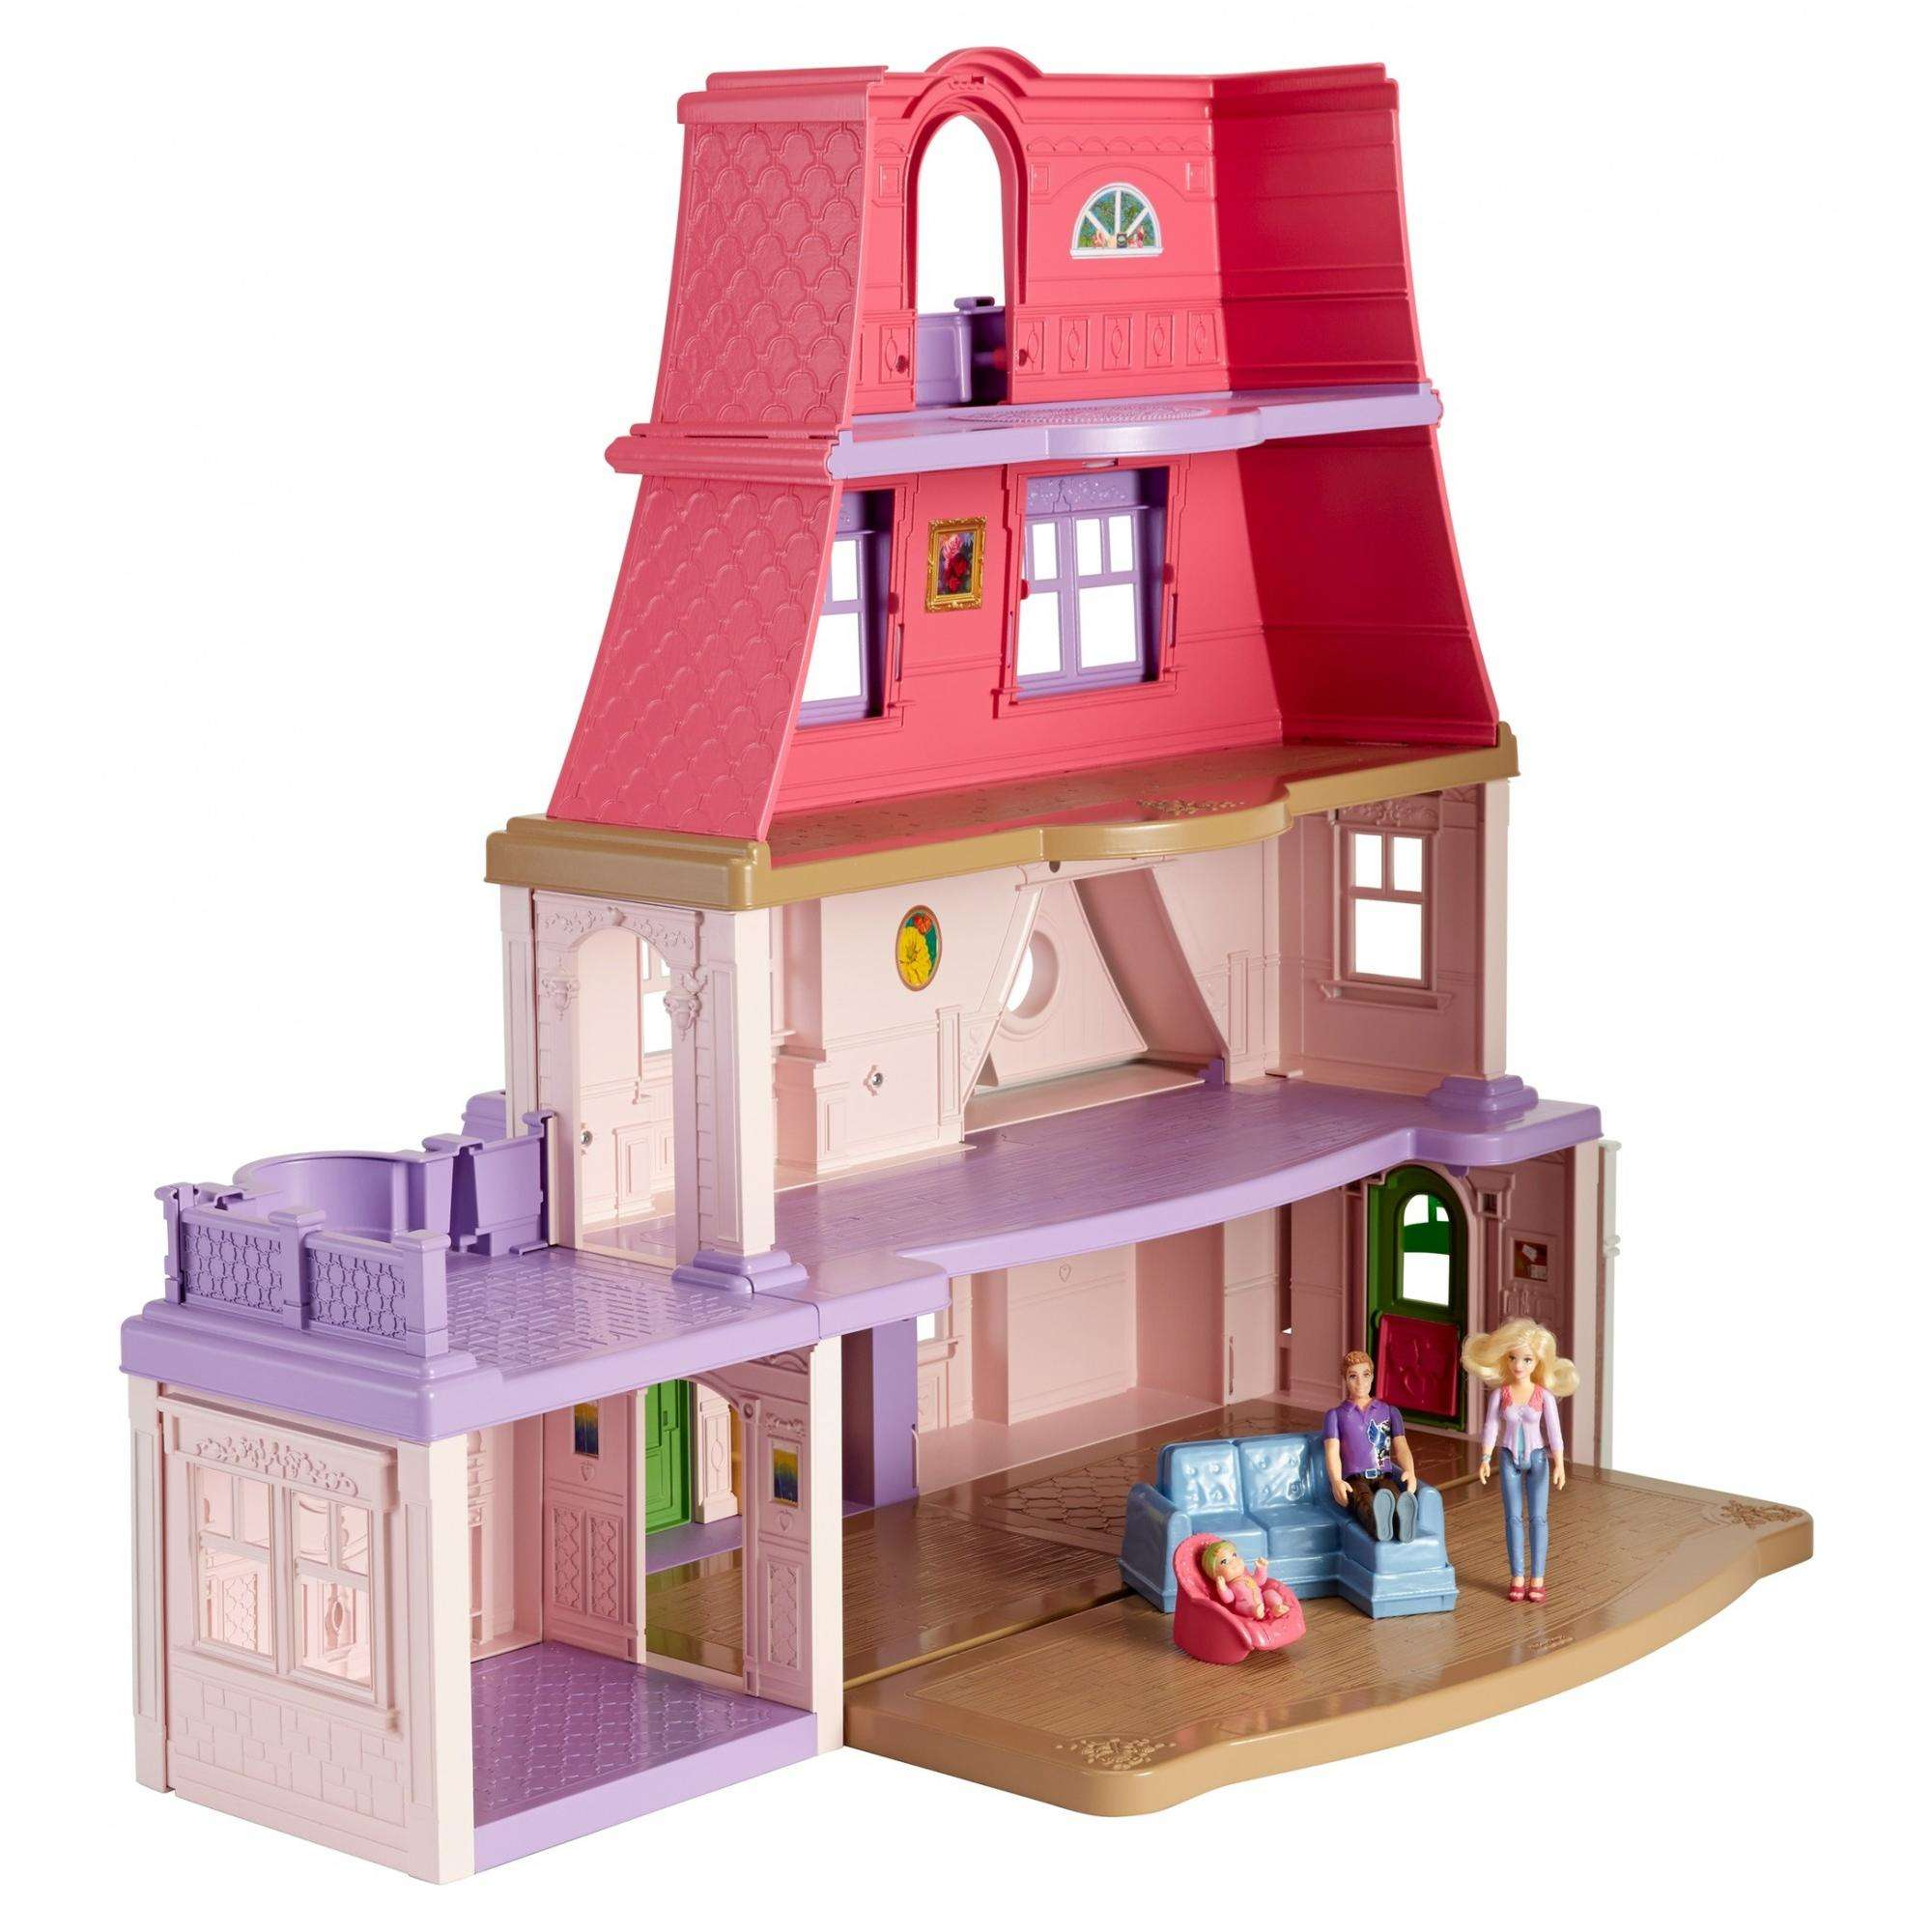 Fisher Price Loving Family Dollhouse Image 7 Of 17